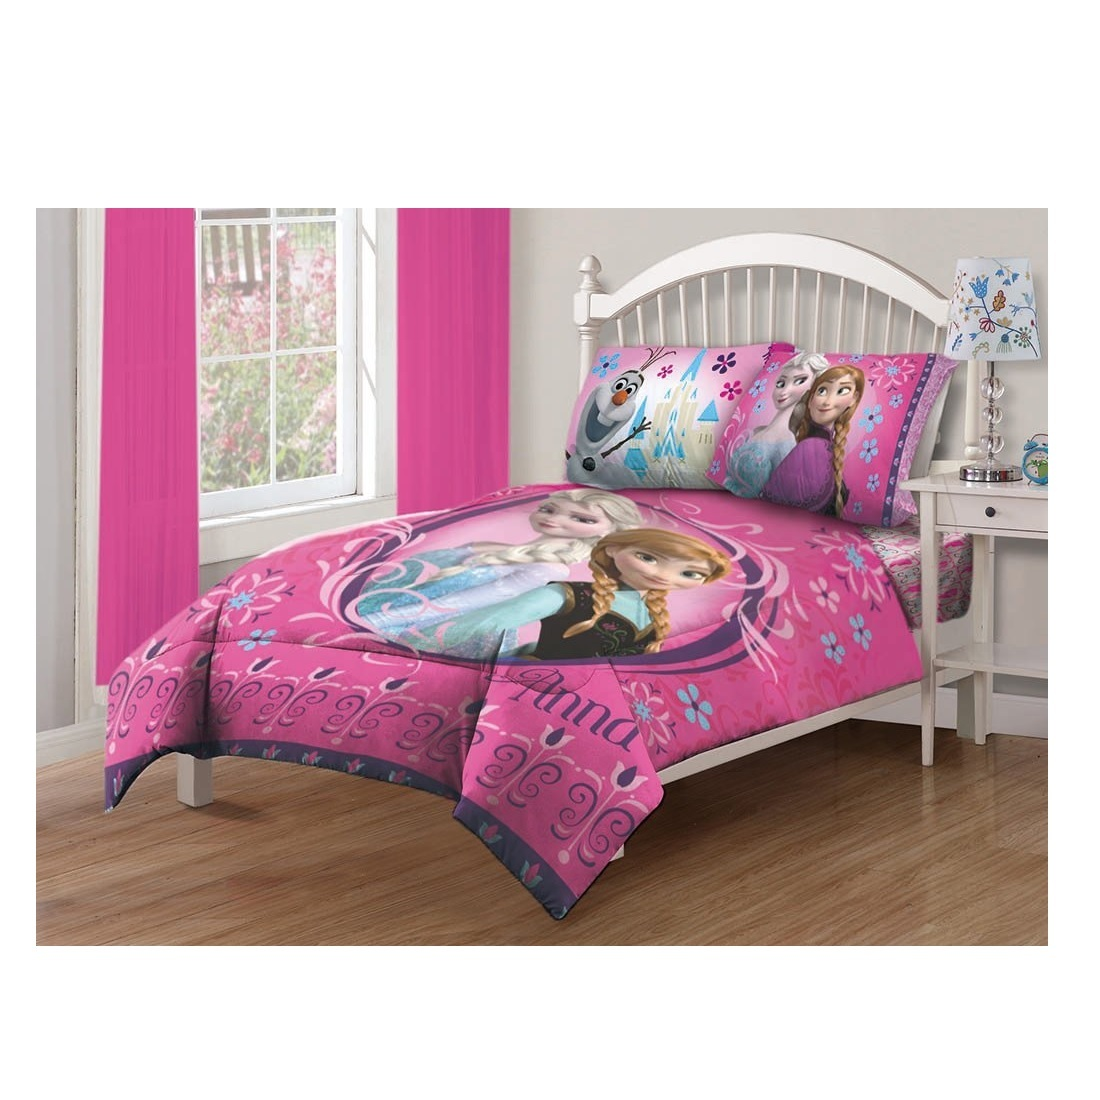 Frozen comforter set twin girls bedding floral sheet full for Full bedroom sets with mattress